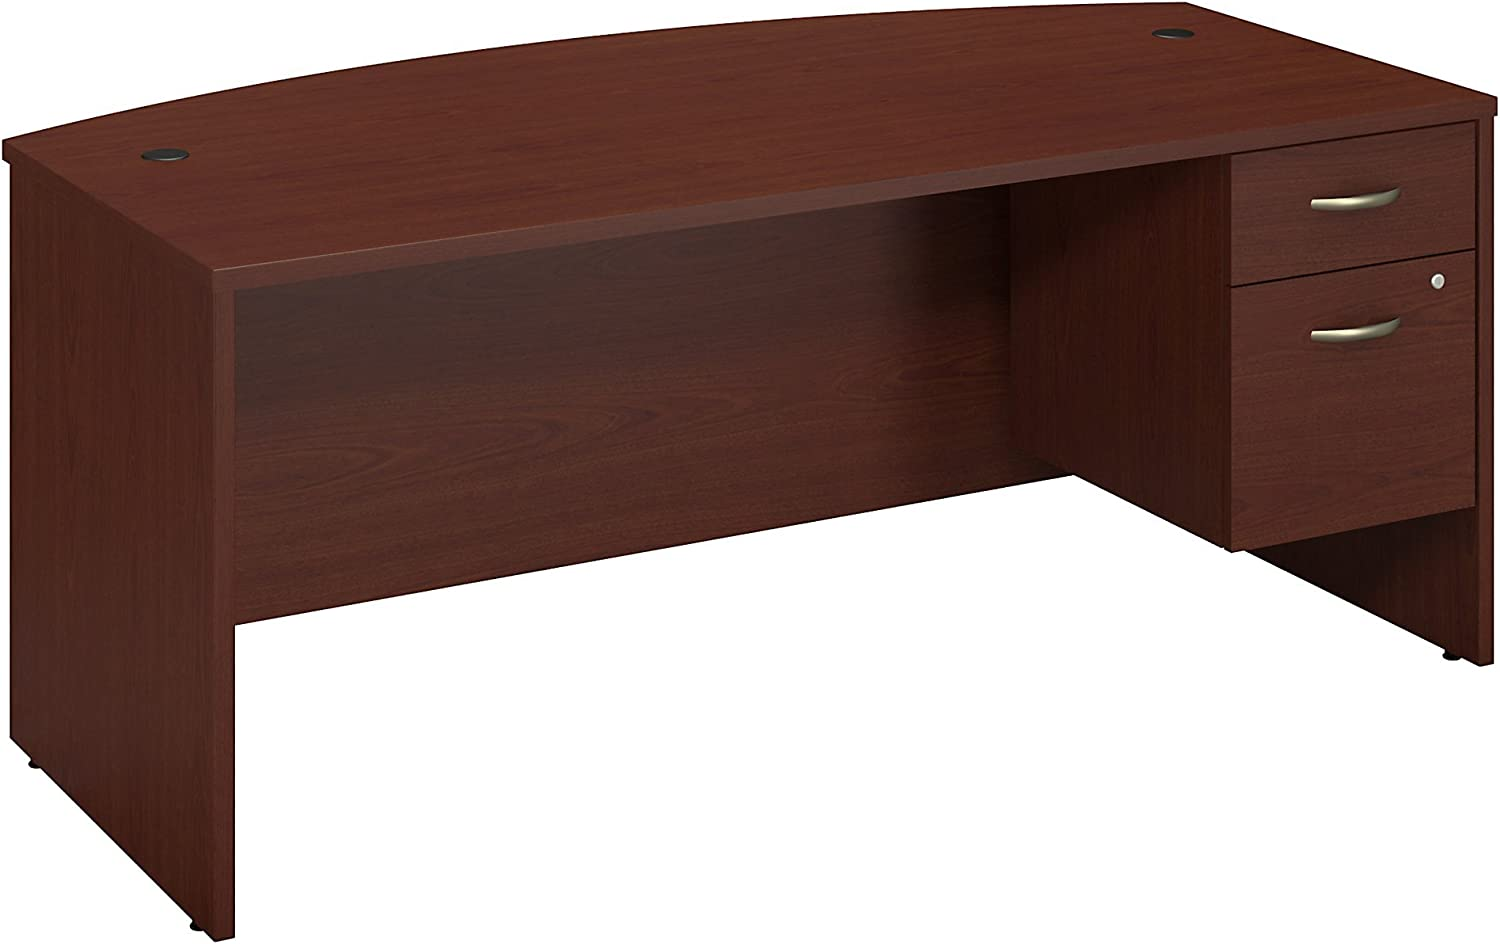 Bush Business Furniture Series C Collection 72W X 36D Bow Front Desk with 3/4 Pedestal in Mahogany